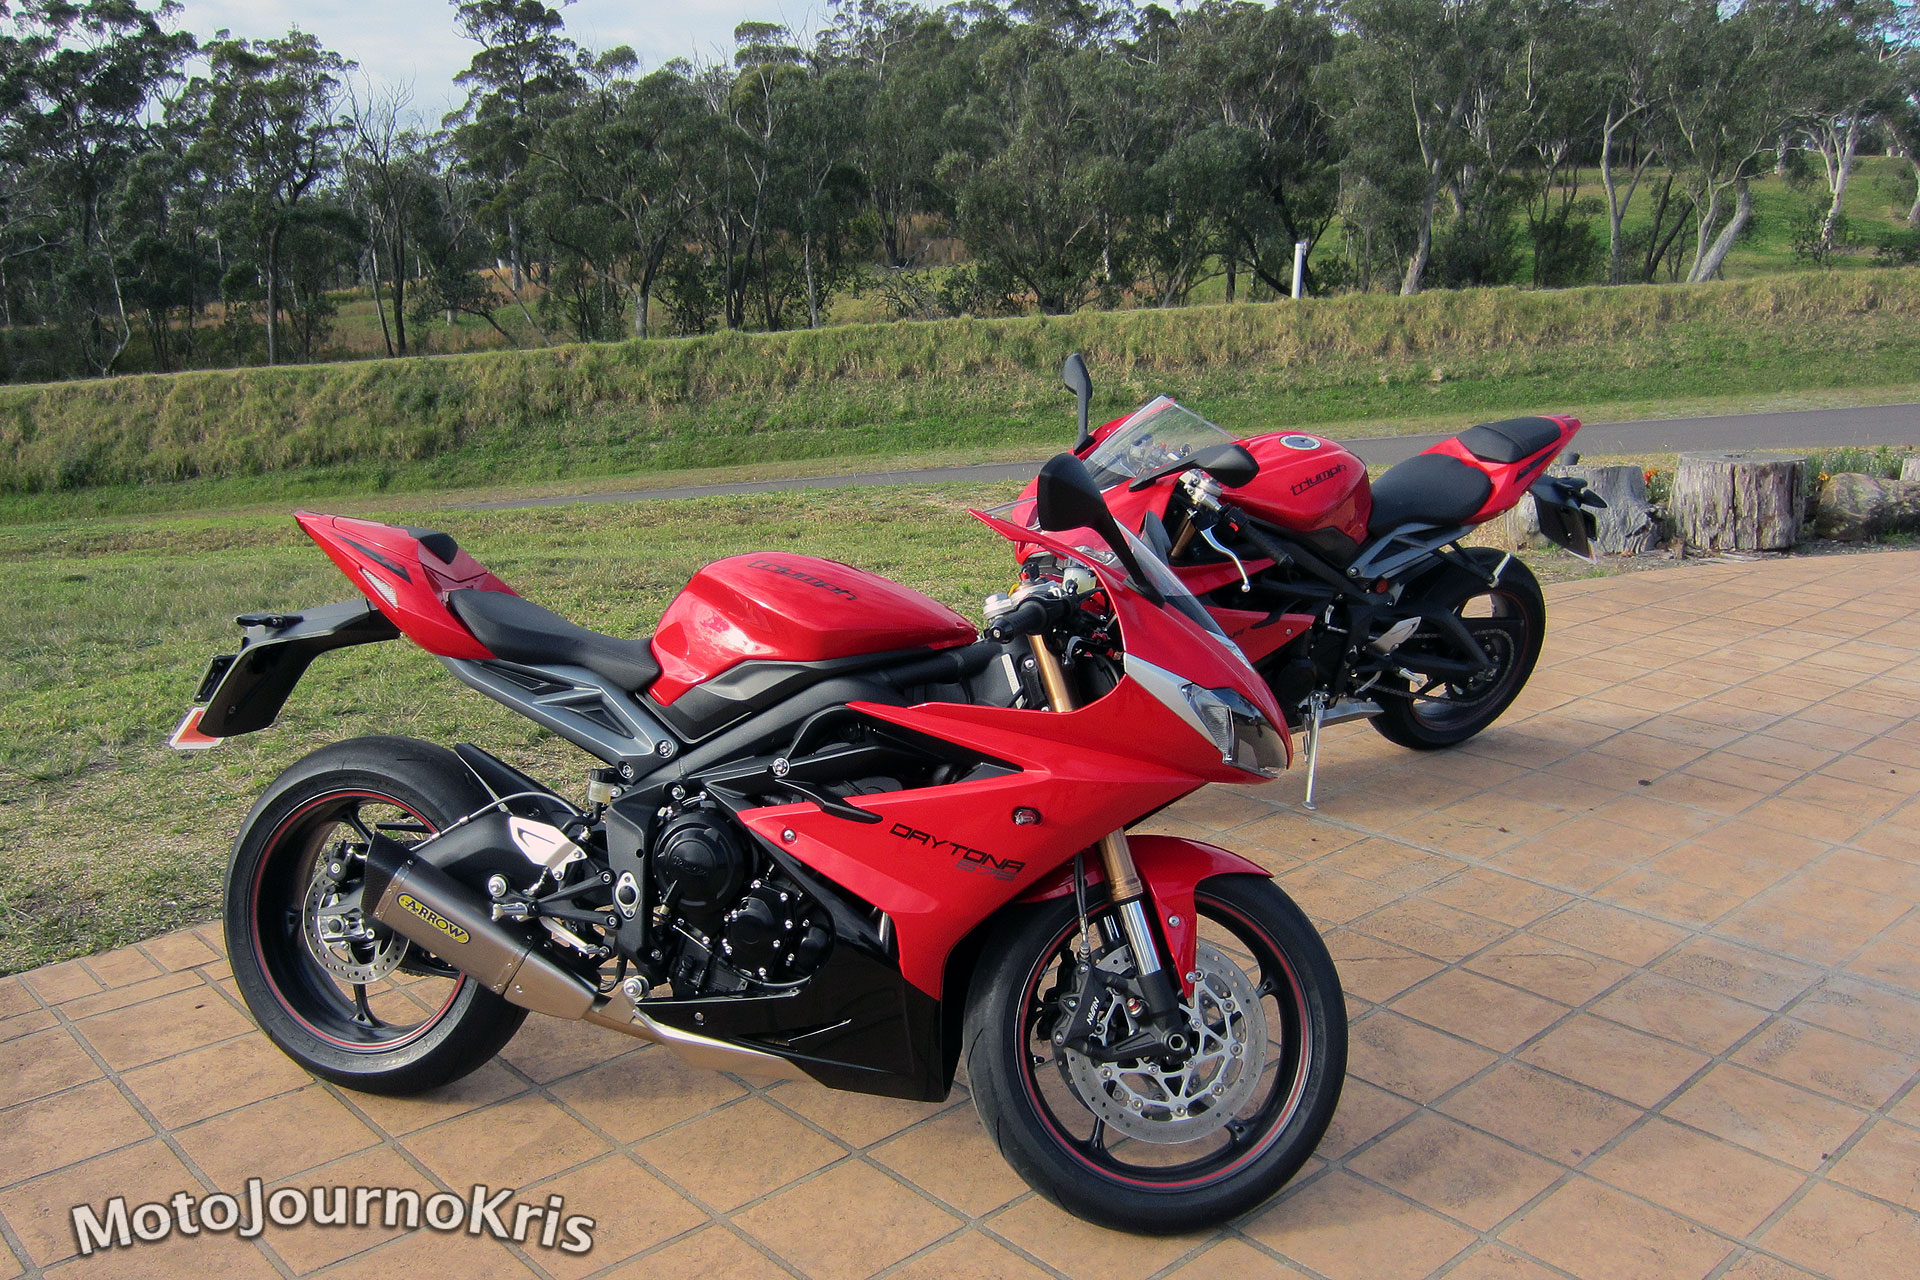 2013 Triumph Daytona 675 Launch